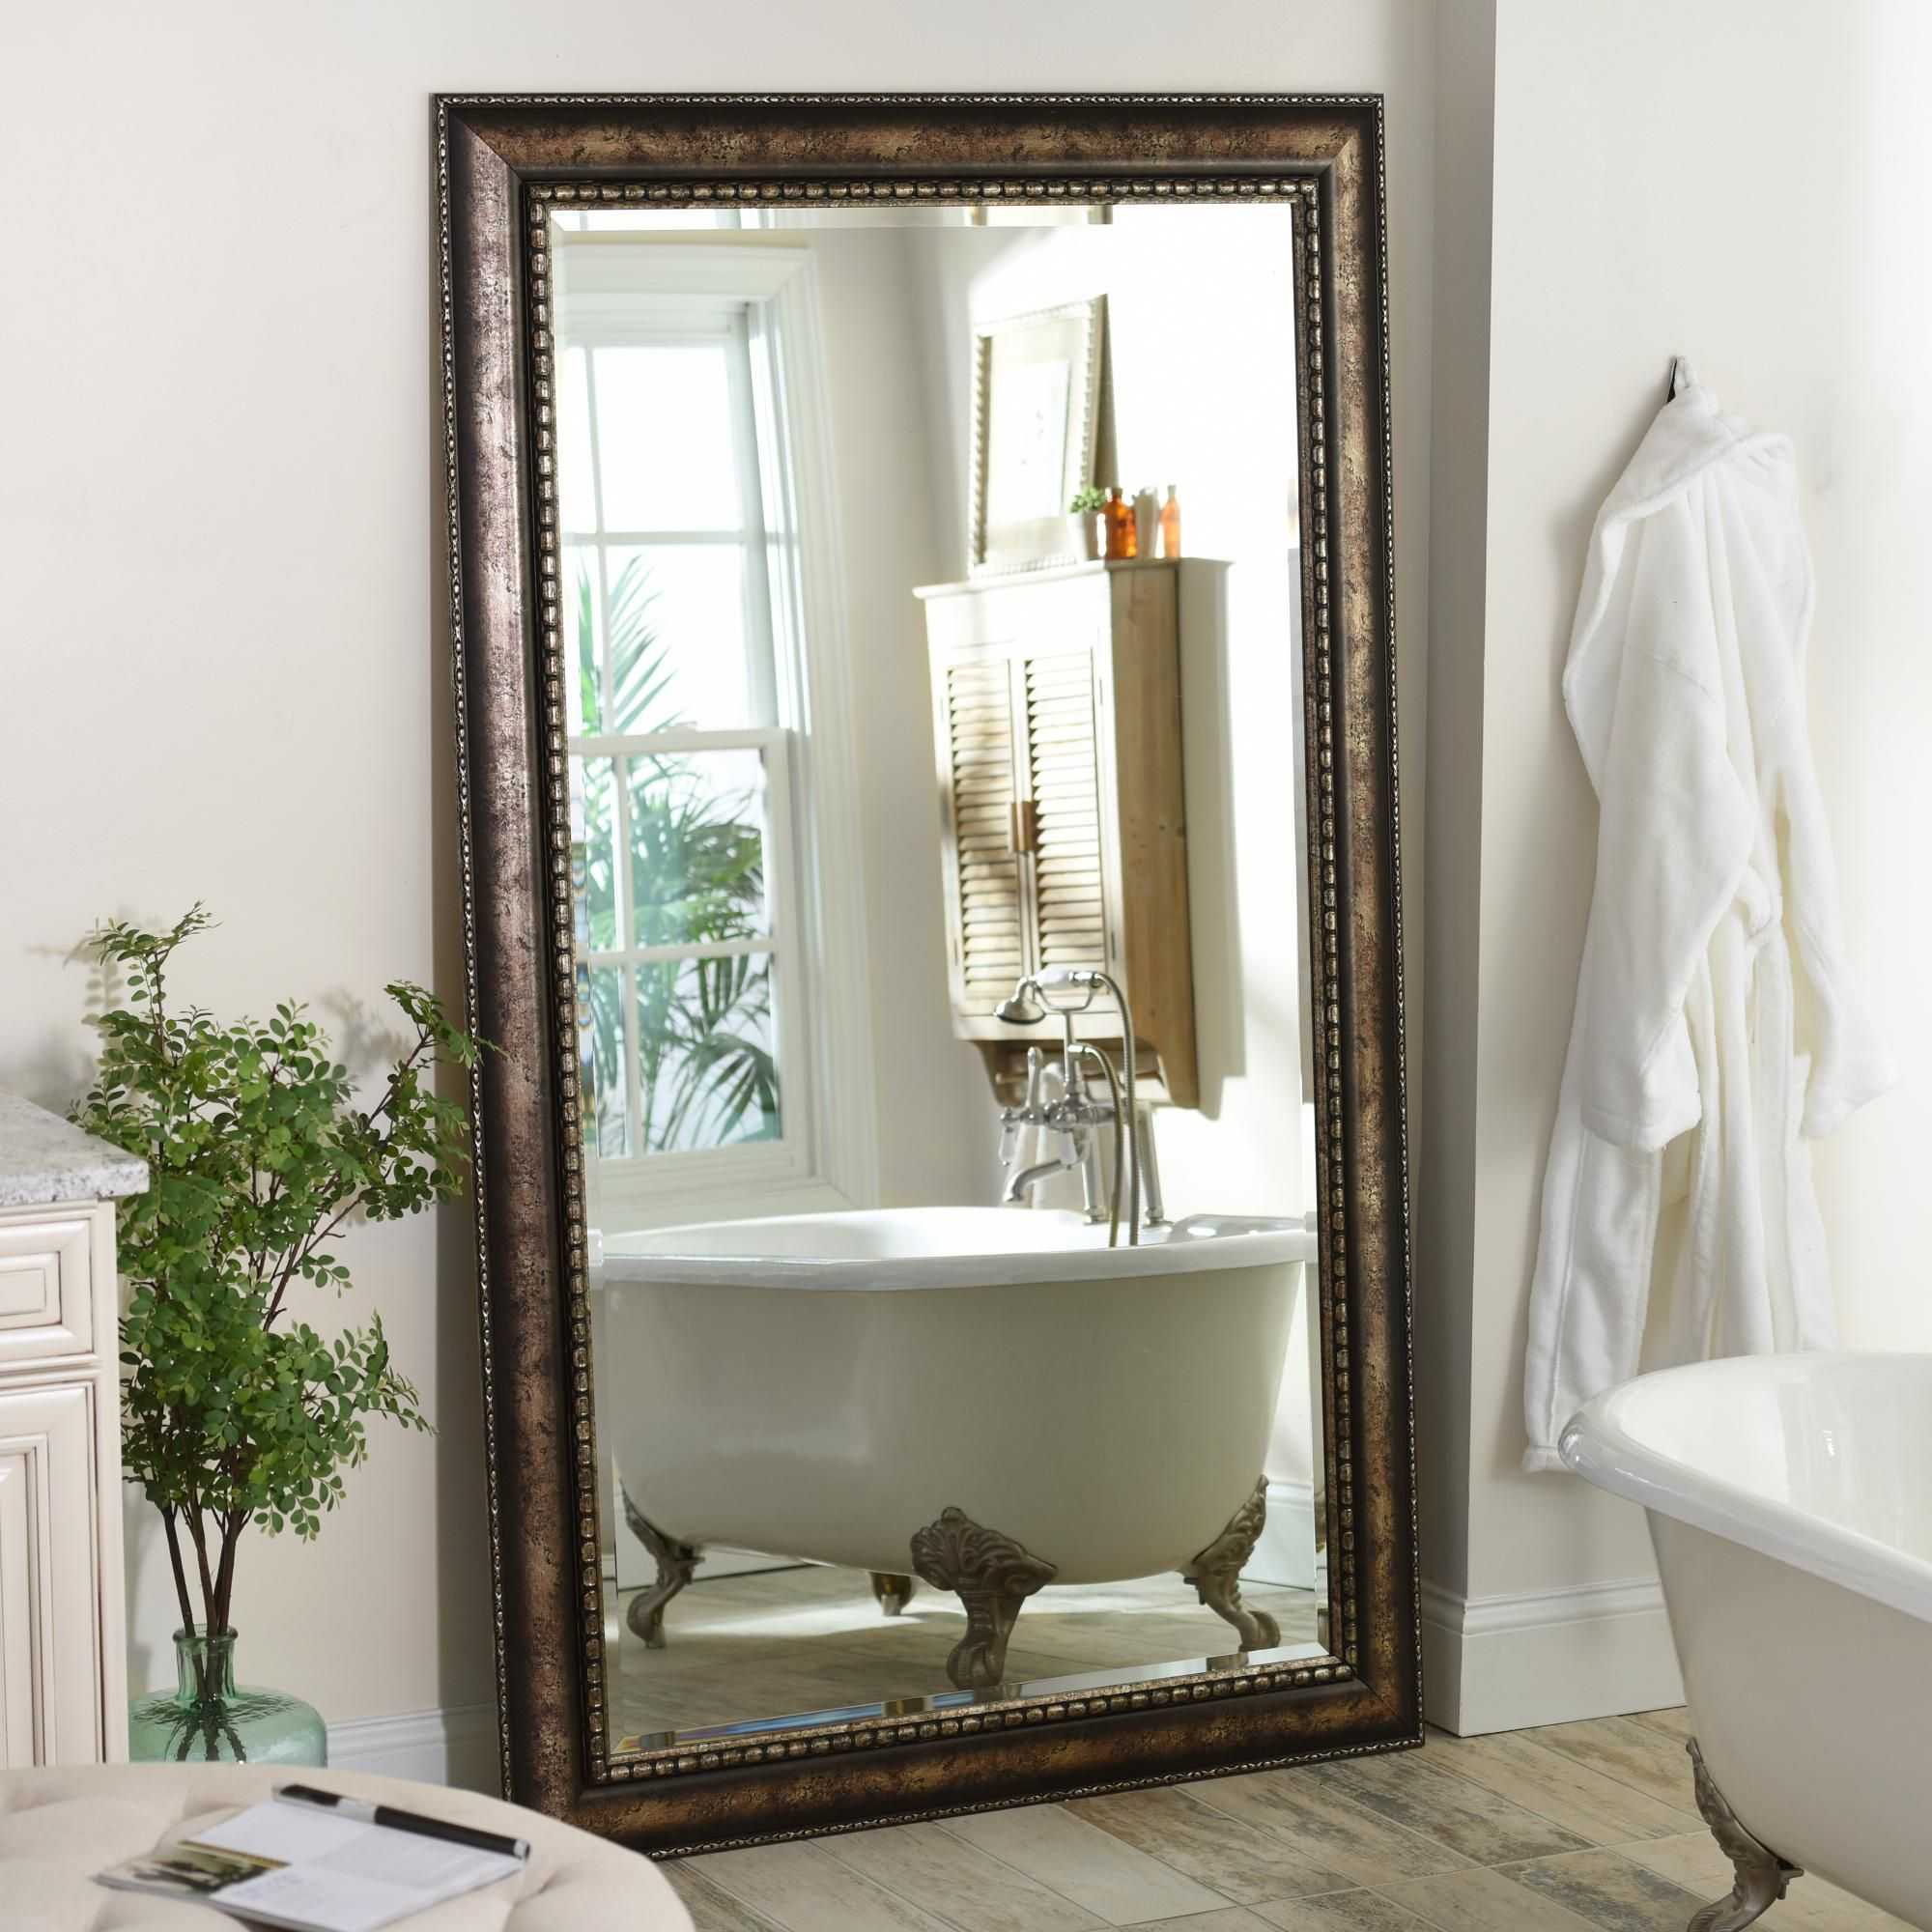 Product Details Antique Silver Leaner Mirror, 46x76 in | Bedroom and Bedding | Leaner mirror ...